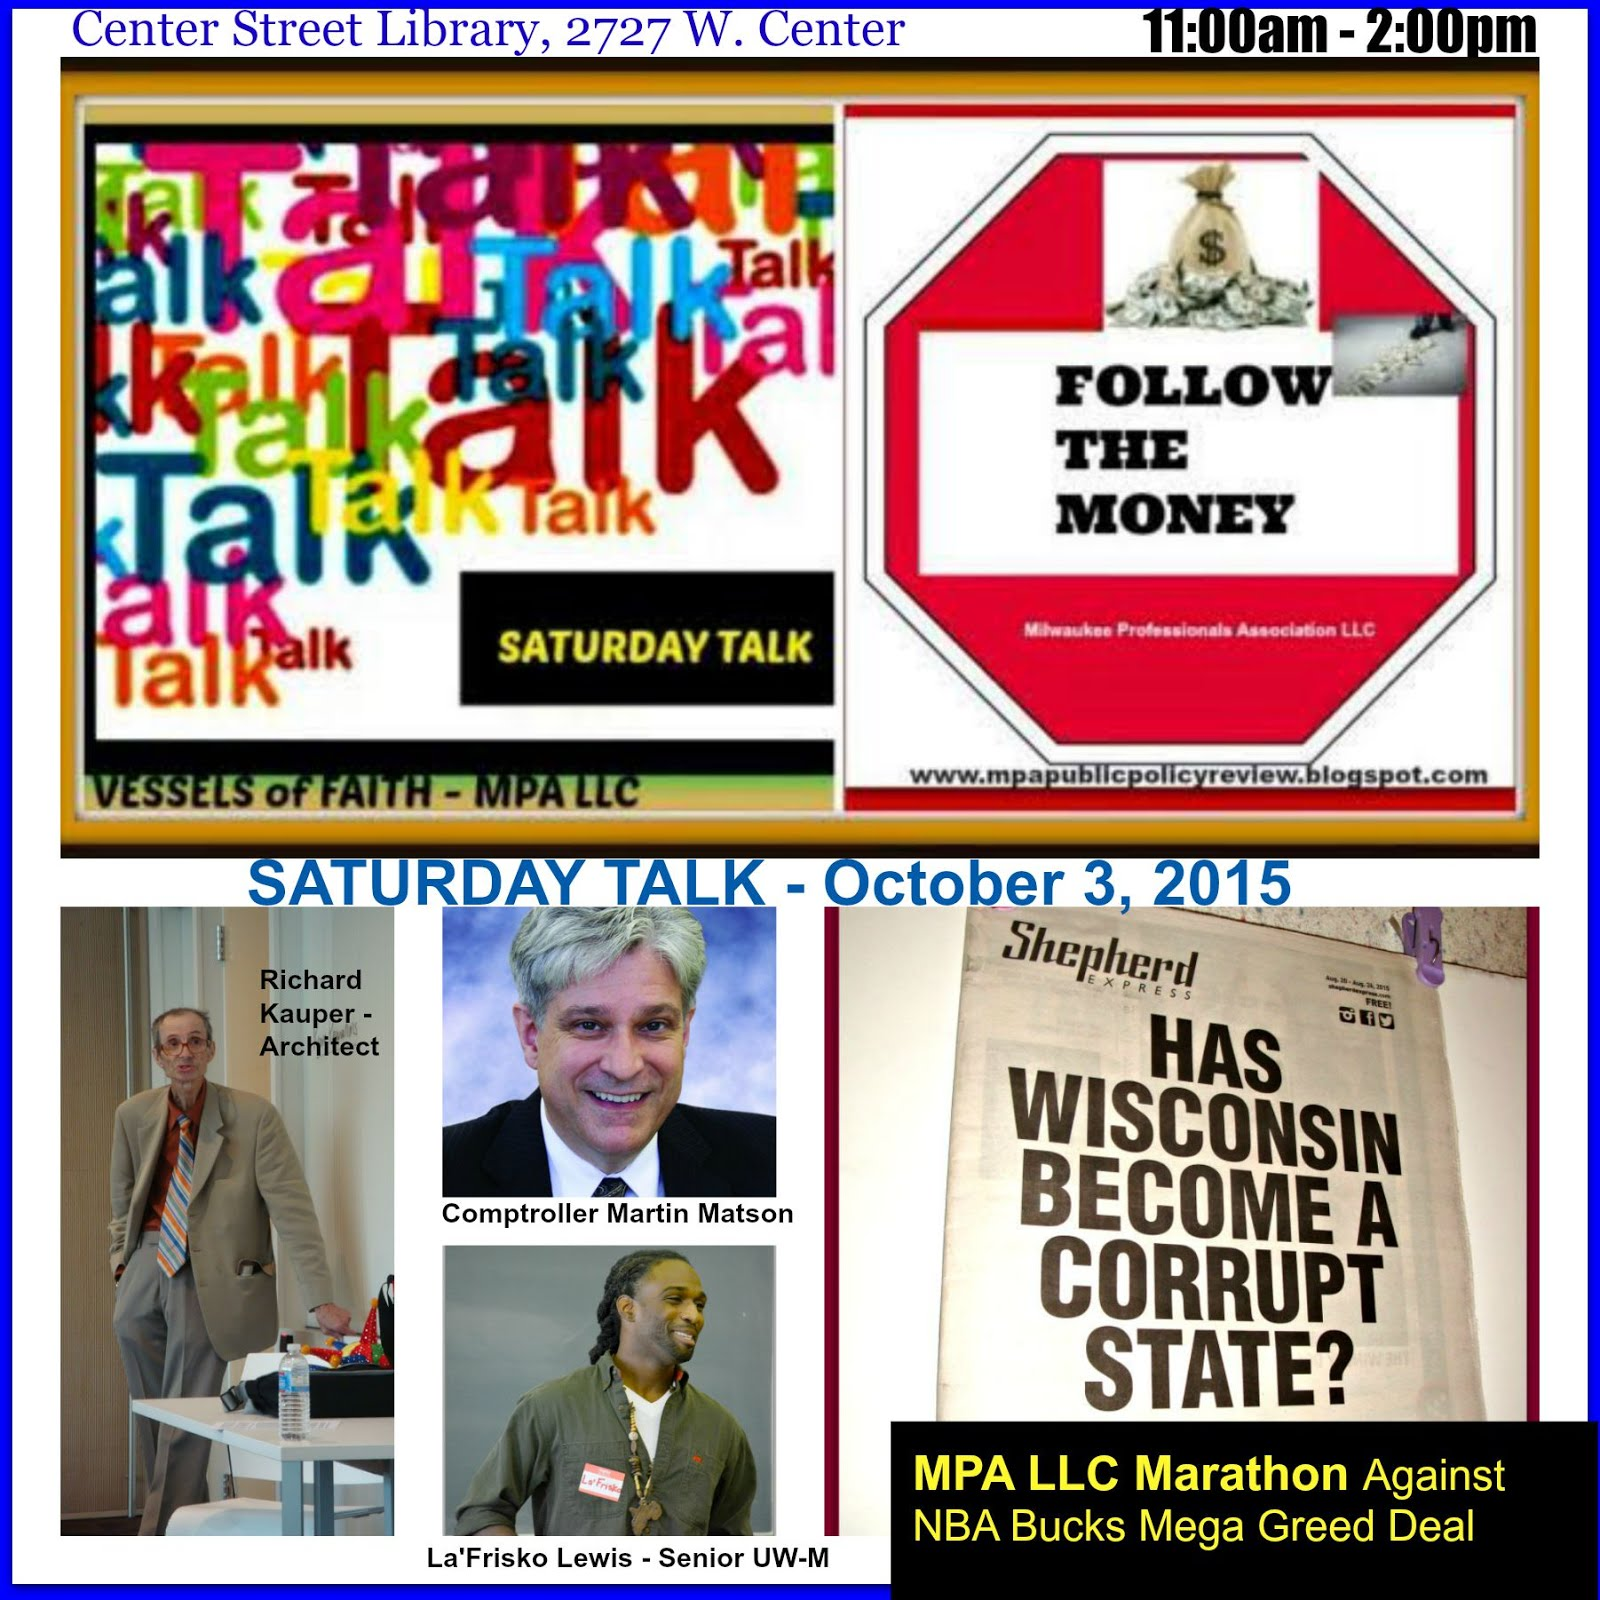 FOLLOW THE MONEY OCTOBER 3, 2015 - SATURDAY TALK